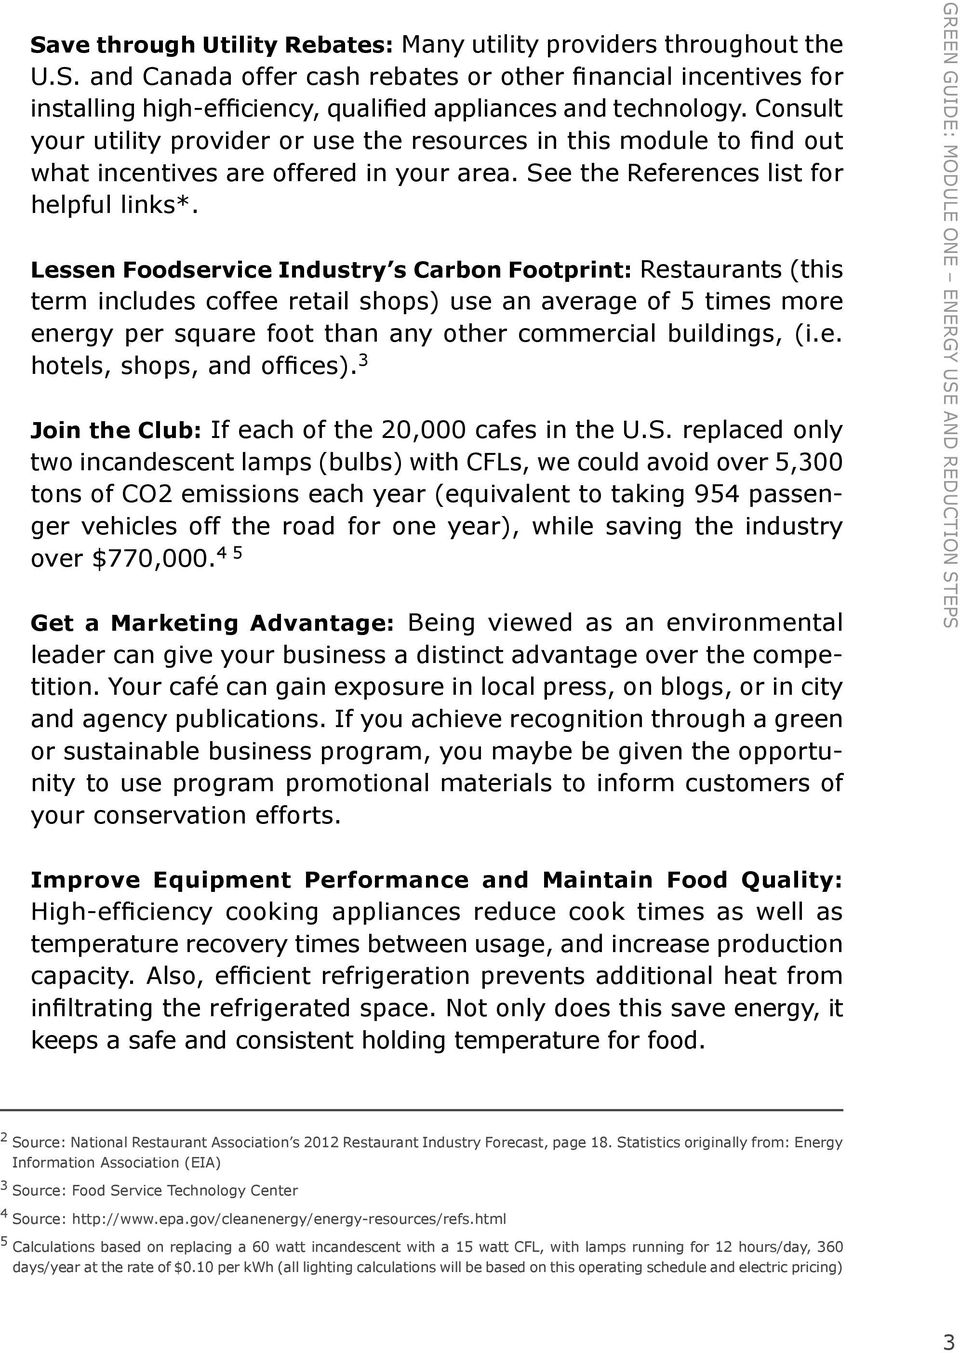 Lessen Foodservice Industry s Carbon Footprint: Restaurants (this term includes coffee retail shops) use an average of 5 times more energy per square foot than any other commercial buildings, (i.e. hotels, shops, and offices).